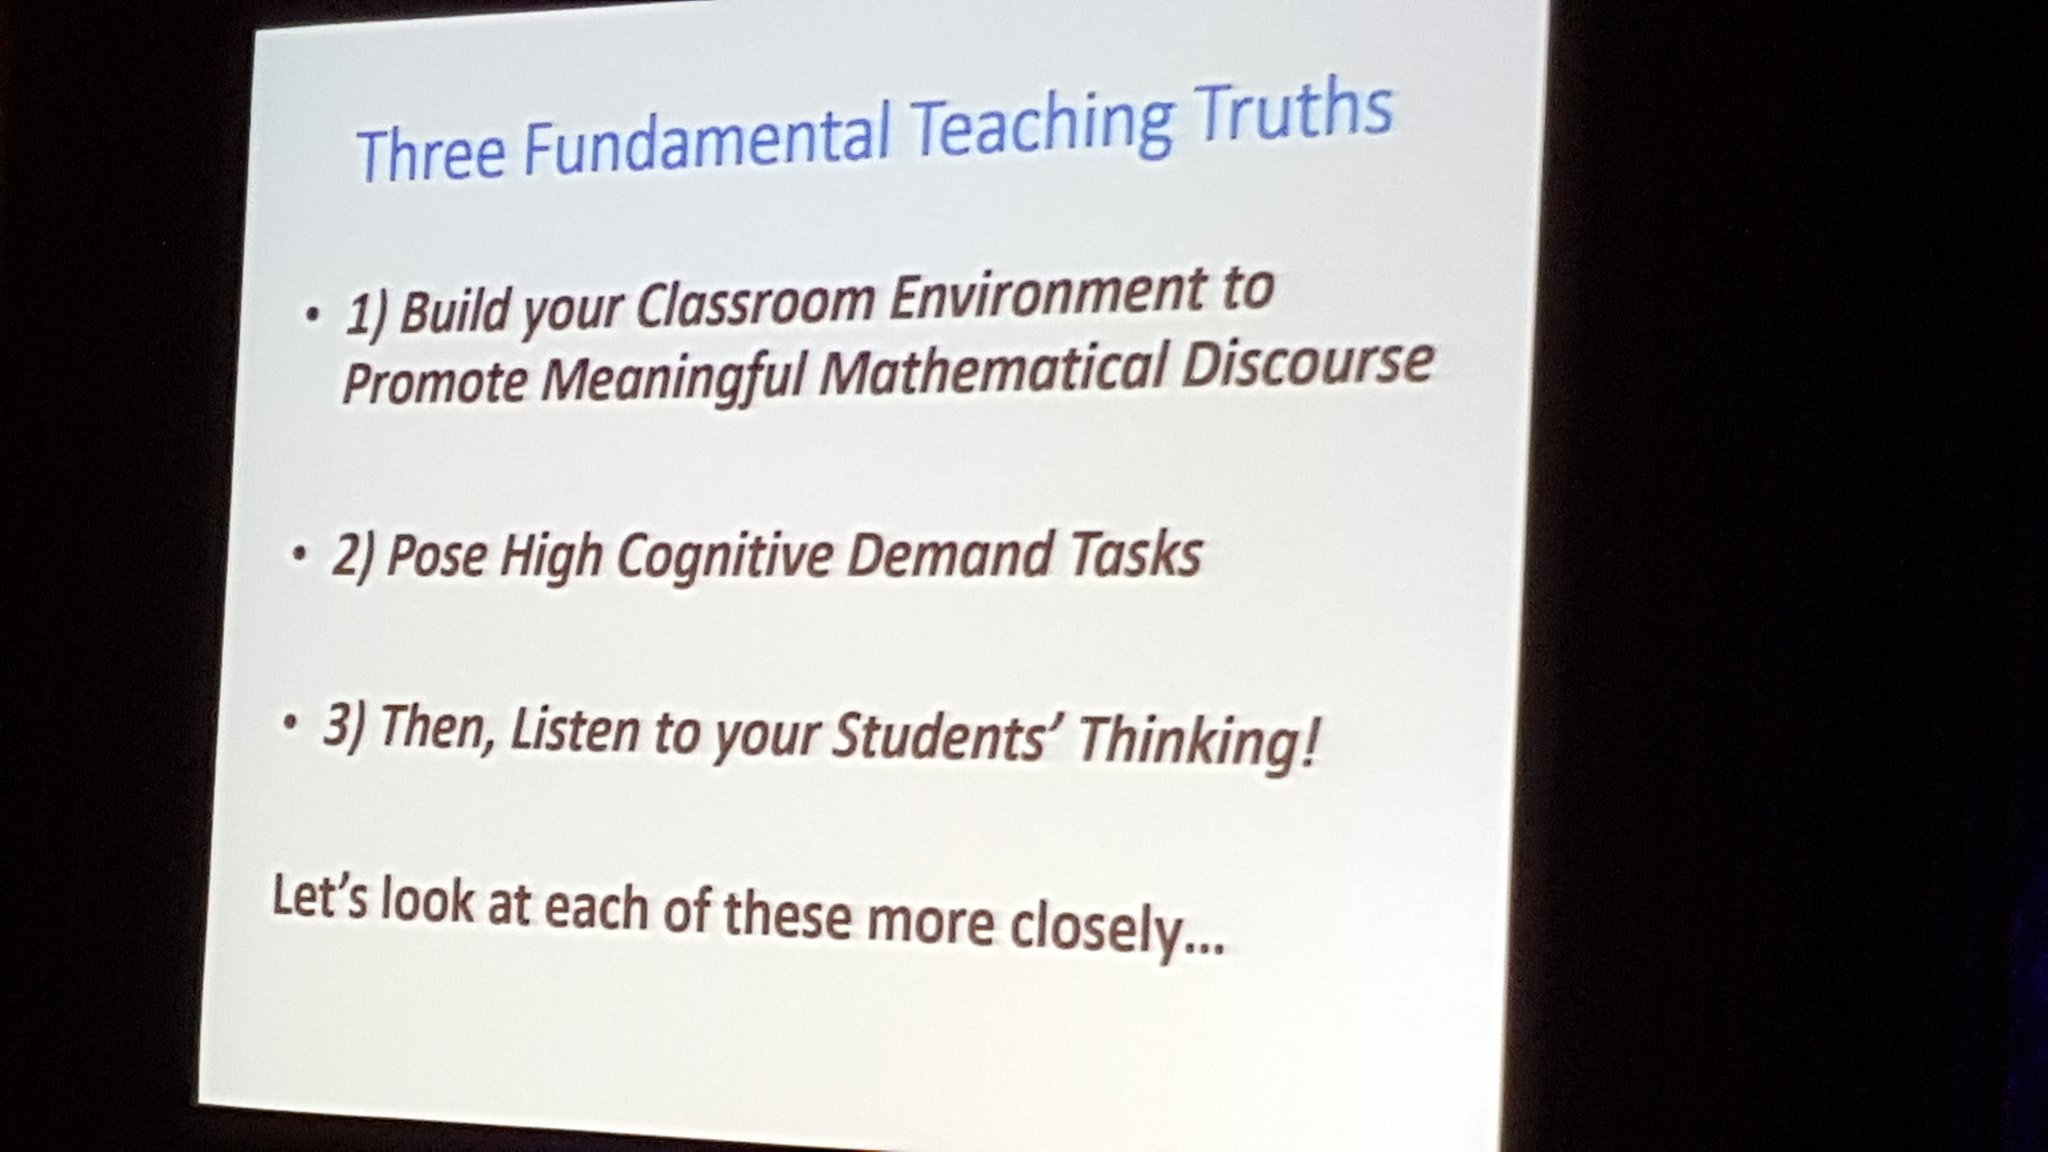 @nctm has a coaches sister to message across many yrs @mikeshags #NCTMregionals #presIgnite https://t.co/jZhWGCJqSQ